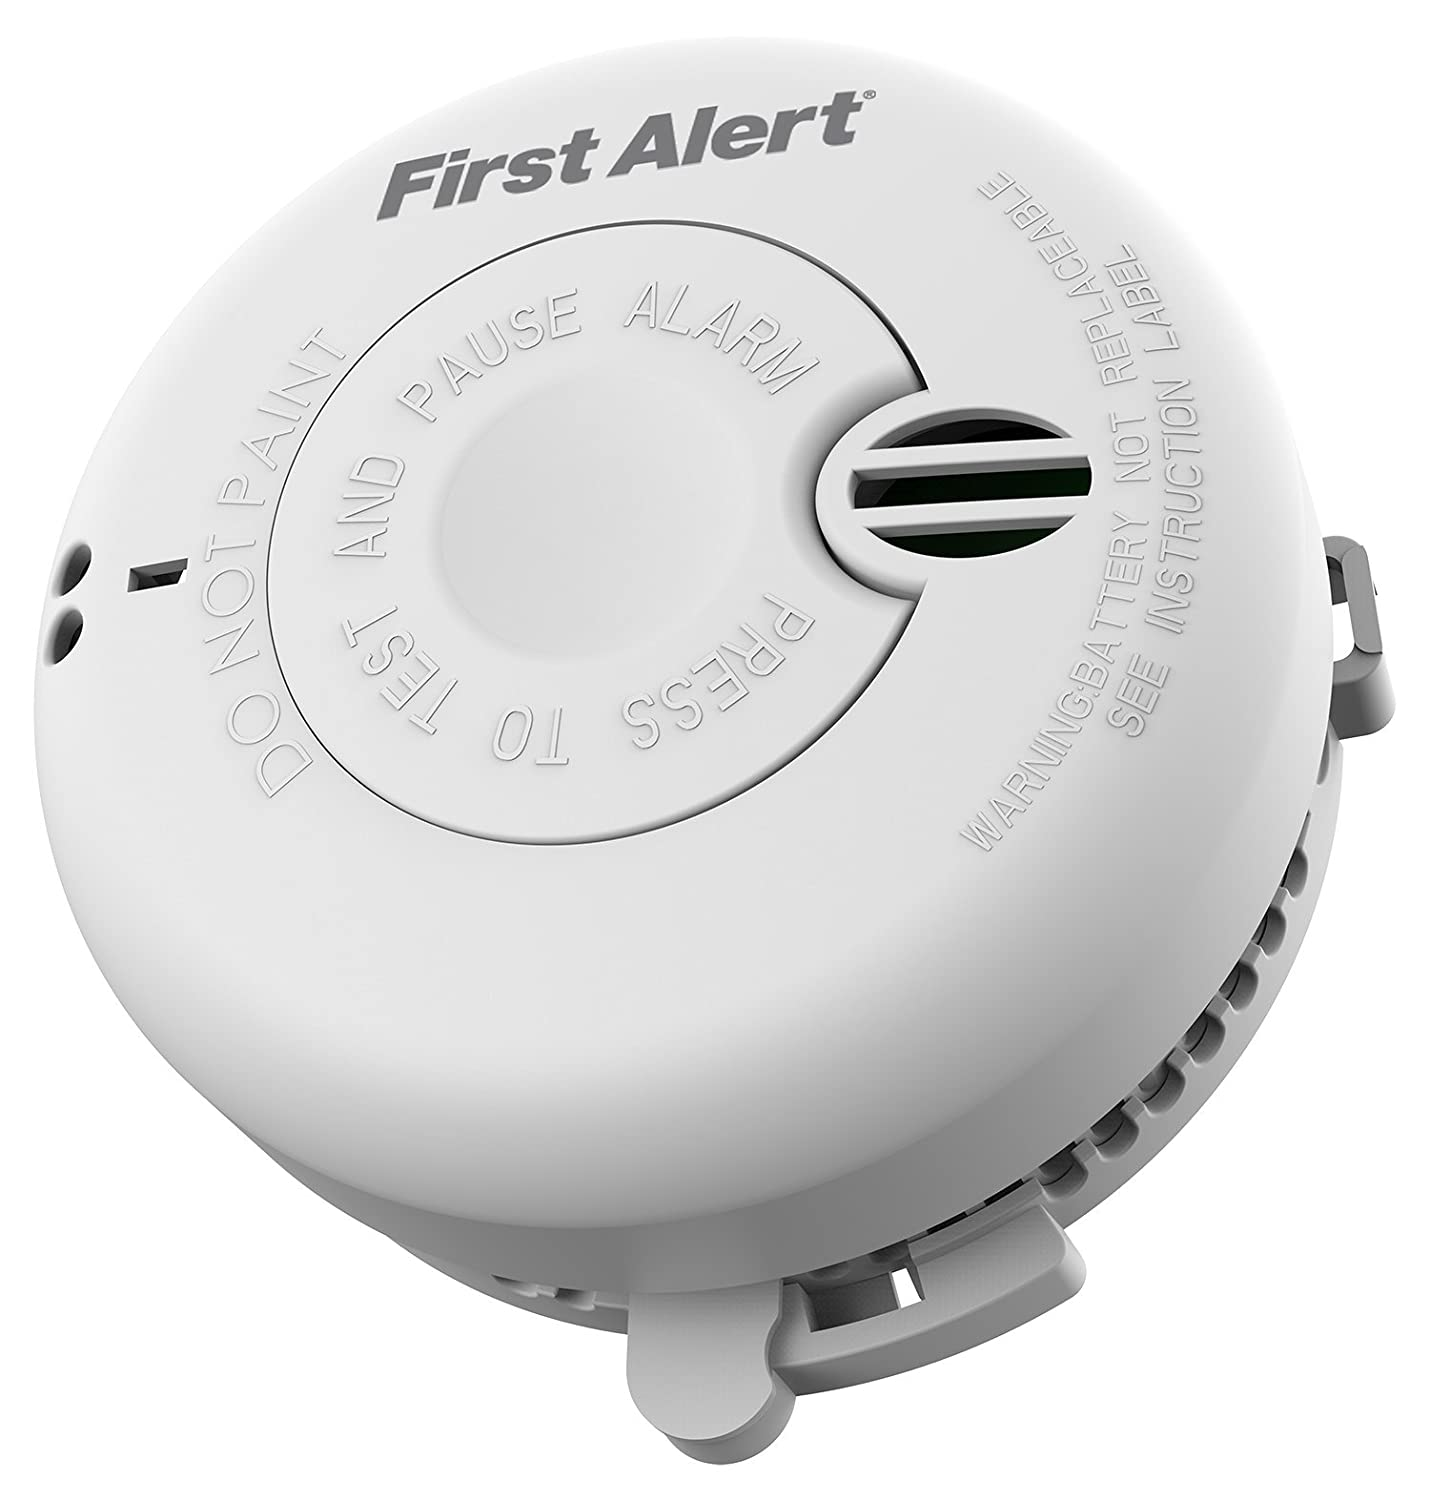 first alert 10 year battery smoke amazoncouk diy u0026 tools - First Alert Smoke Alarm